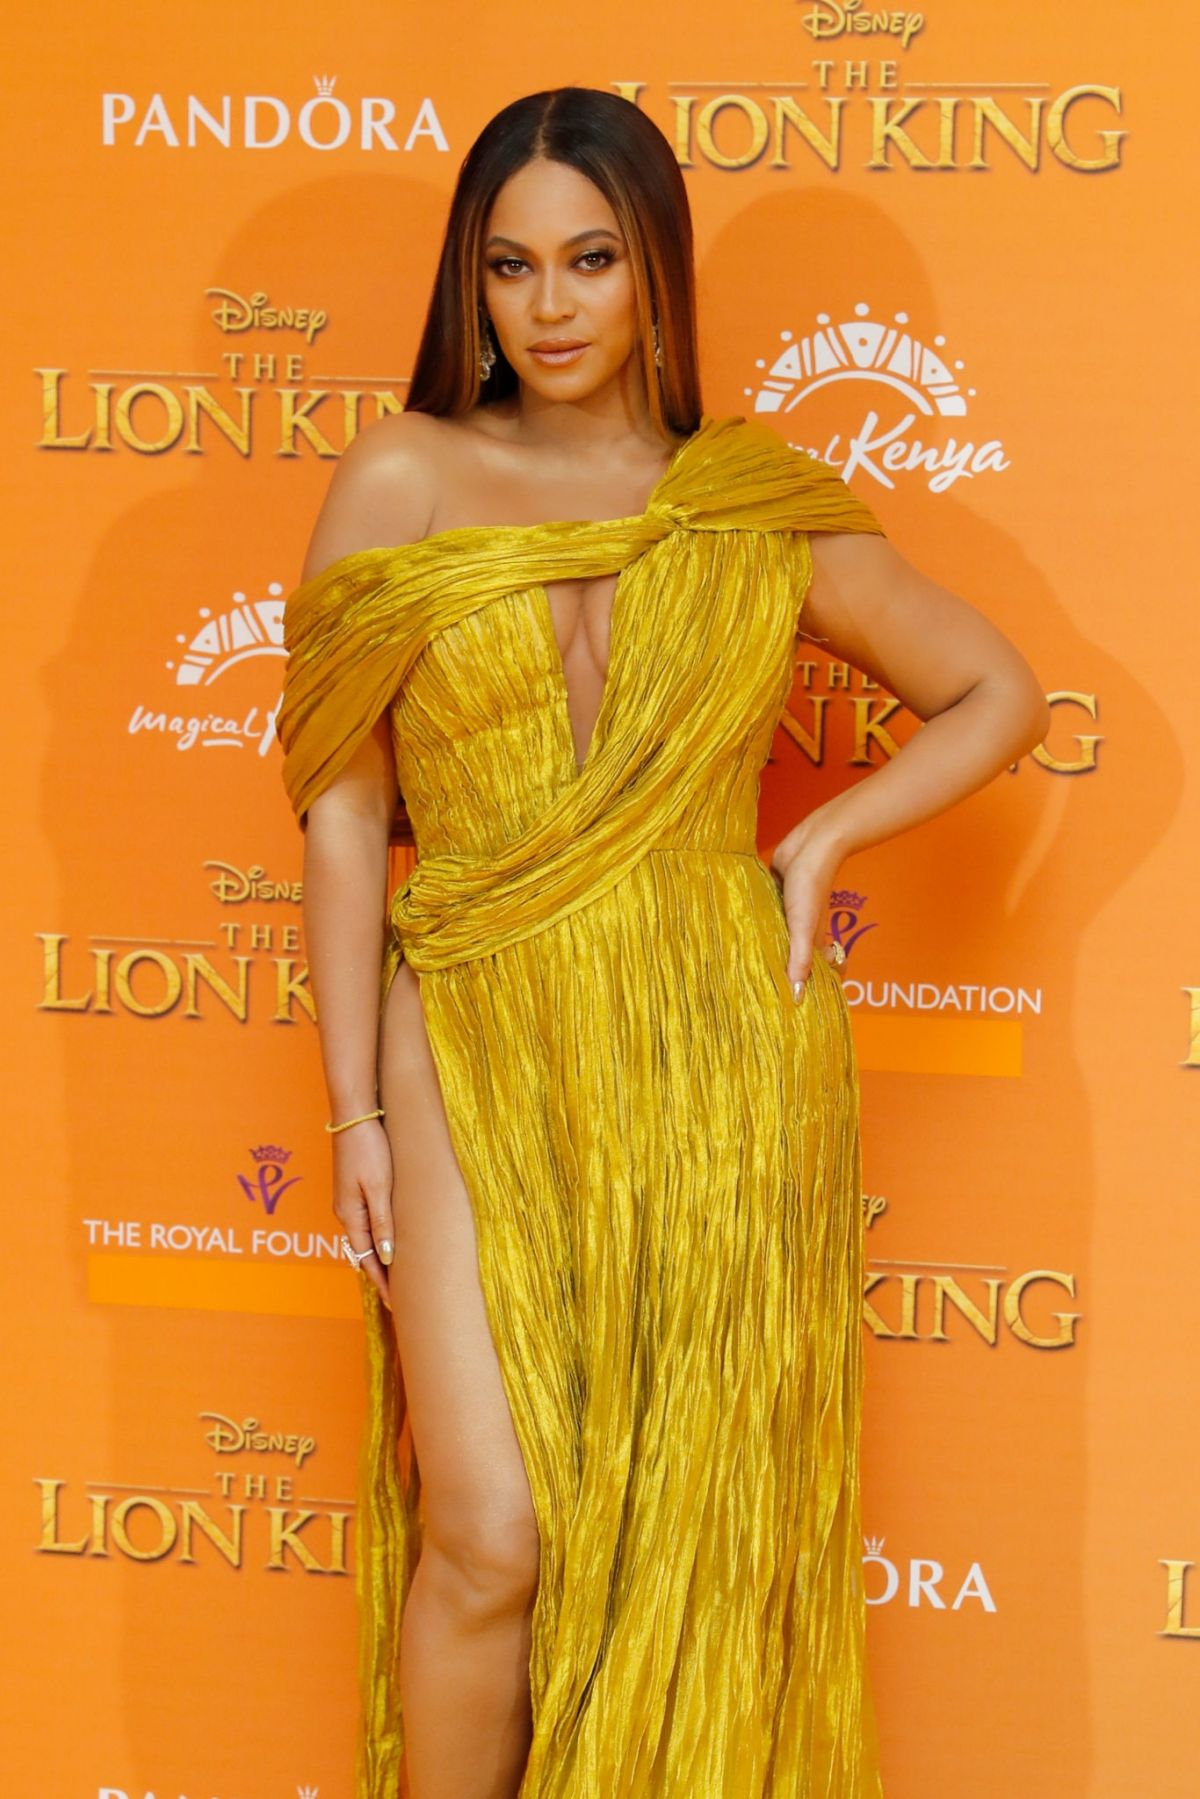 Beyonce At The Lion King Premiere In London 07 14 2019